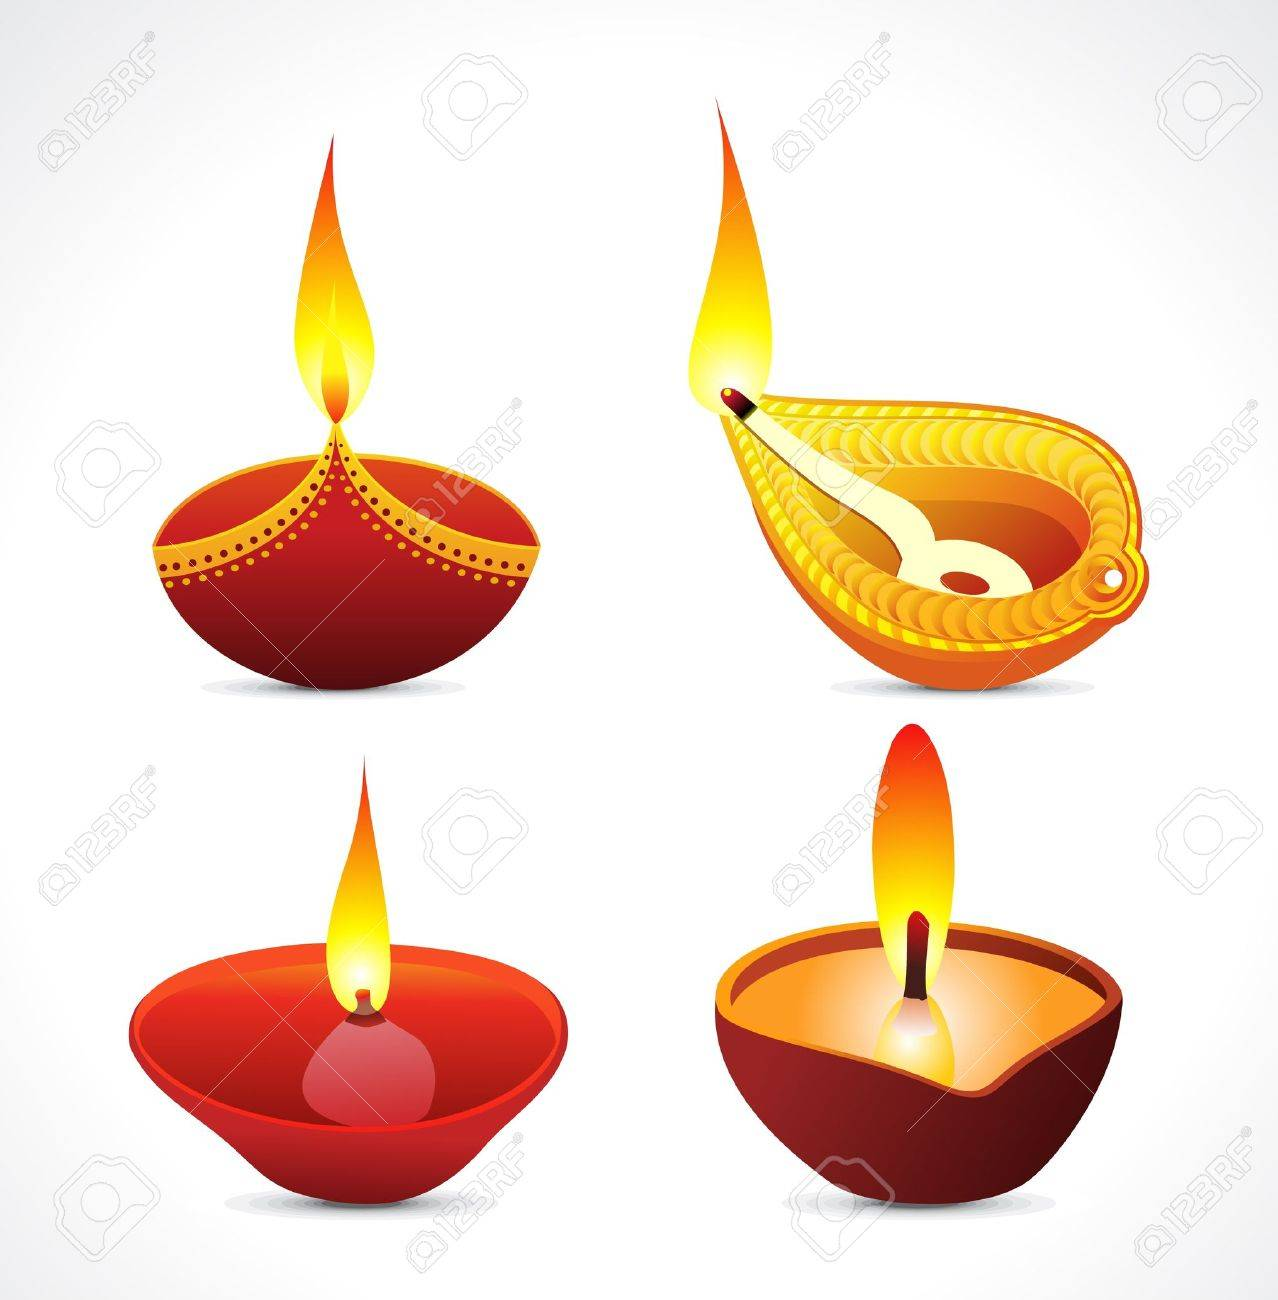 deepavali oil lamp clipart 5 | Clipart Station for Oil Lamp Clip Art  589ifm